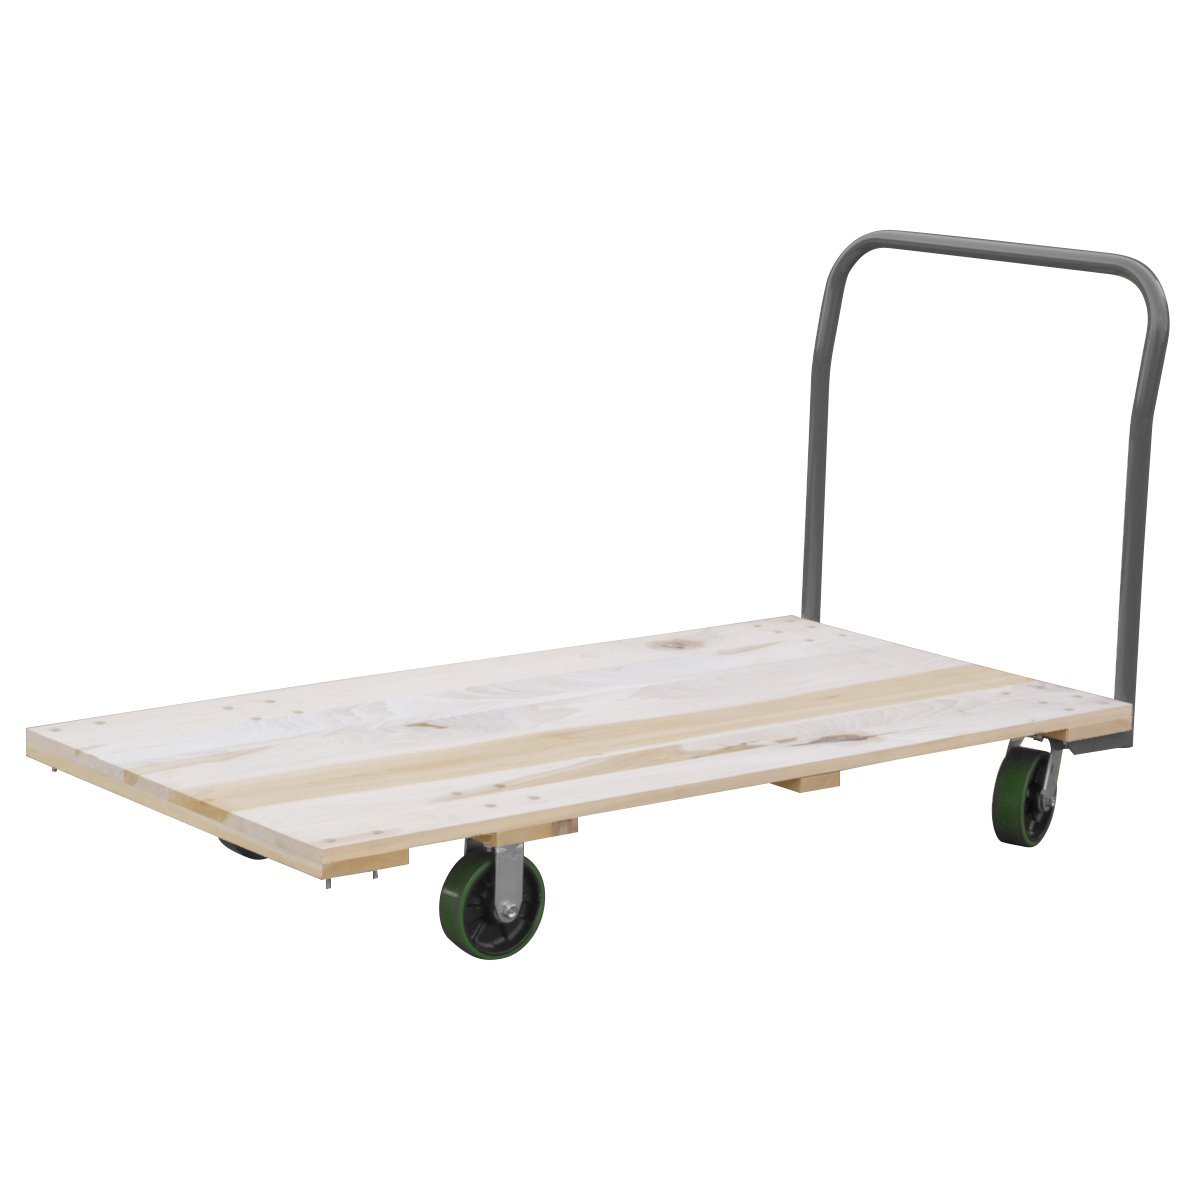 Akro-Mils RPT24485J5G6GY 24-Inch  by 48-Inch  Industrial Grade Hard Wood Platform Truck with Open Handle and 6-Inch  Polyurethane Casters with  2400-Pound capacity